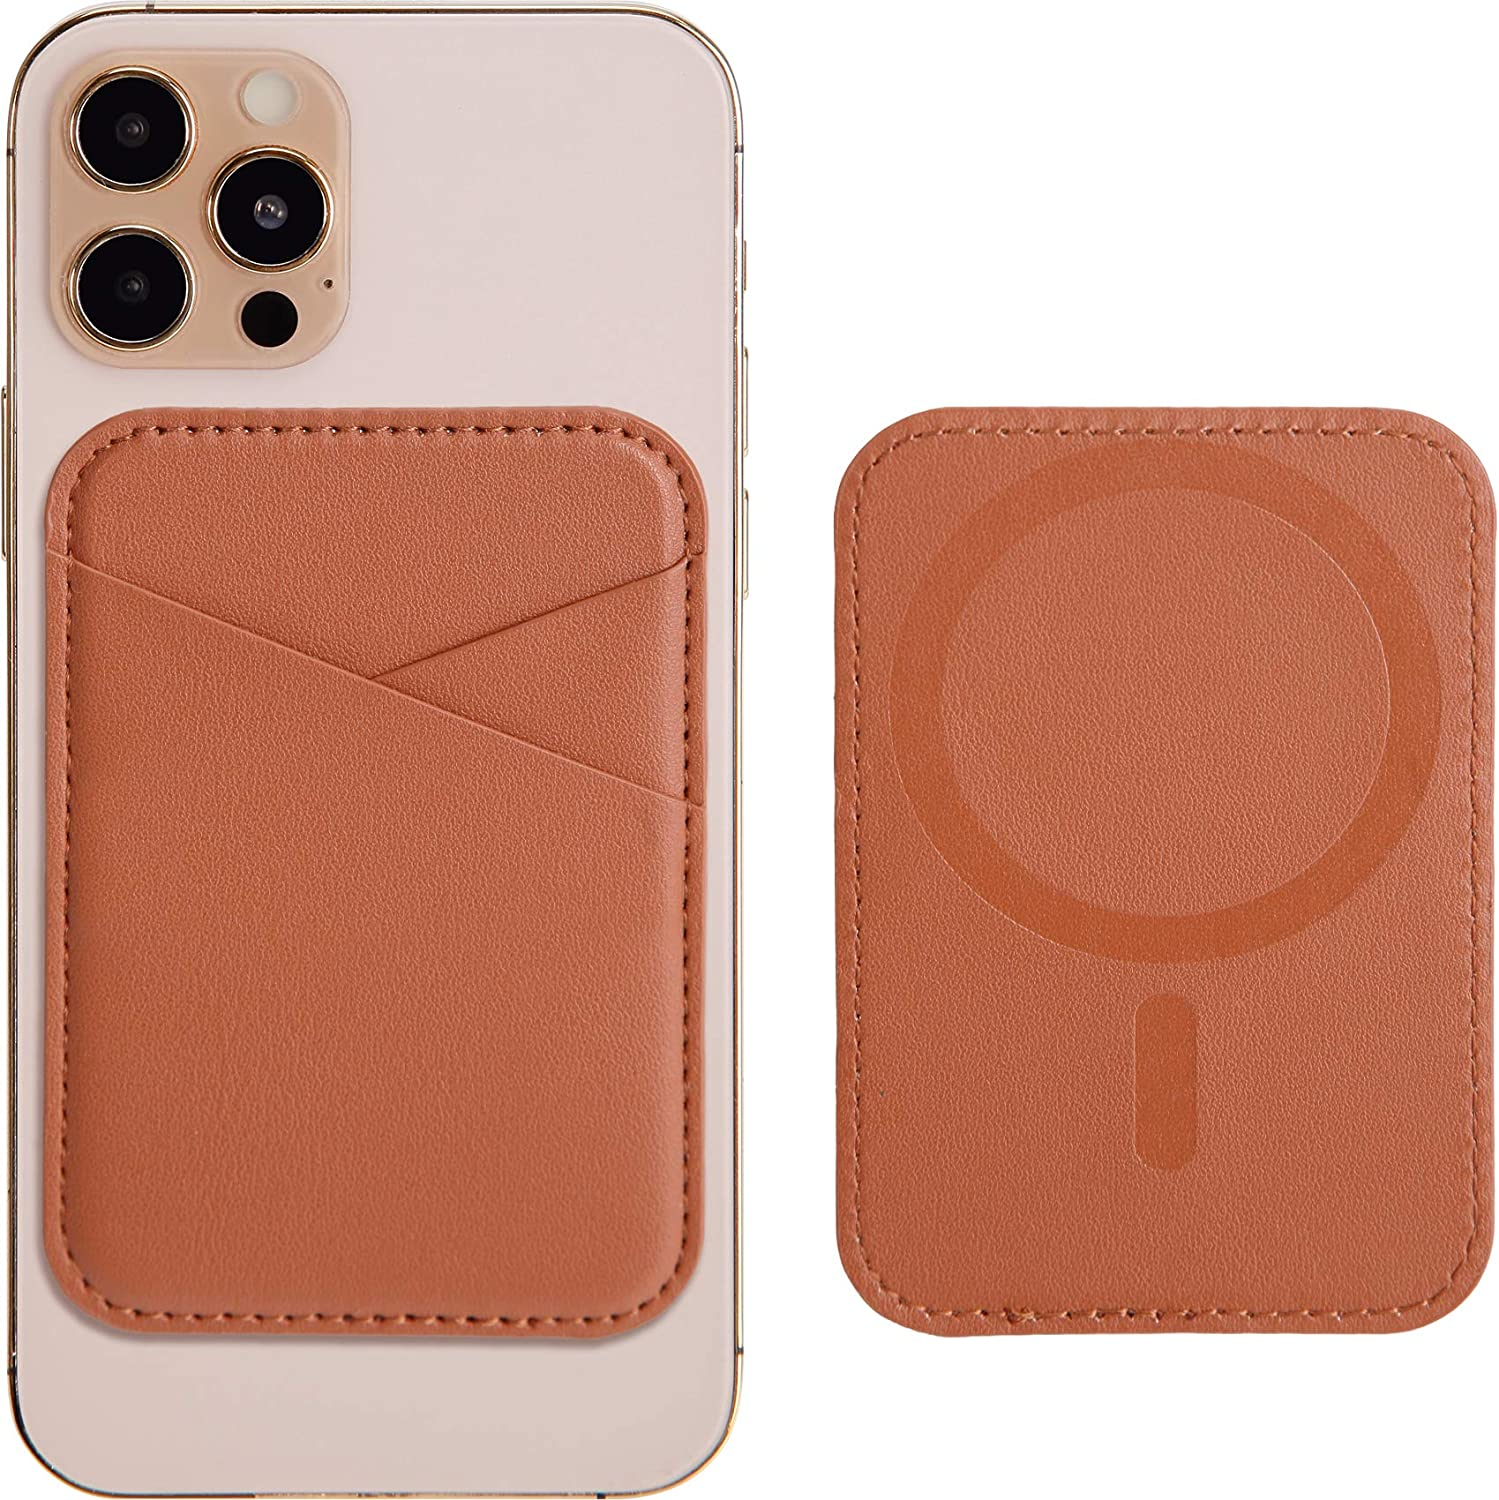 Magnetic Leather Wallet with MagSafe for iPhone 12/12 Mini/12 Pro/12 Pro Max, RFID Card Holder Wallet, Max 3 Cards, Brown